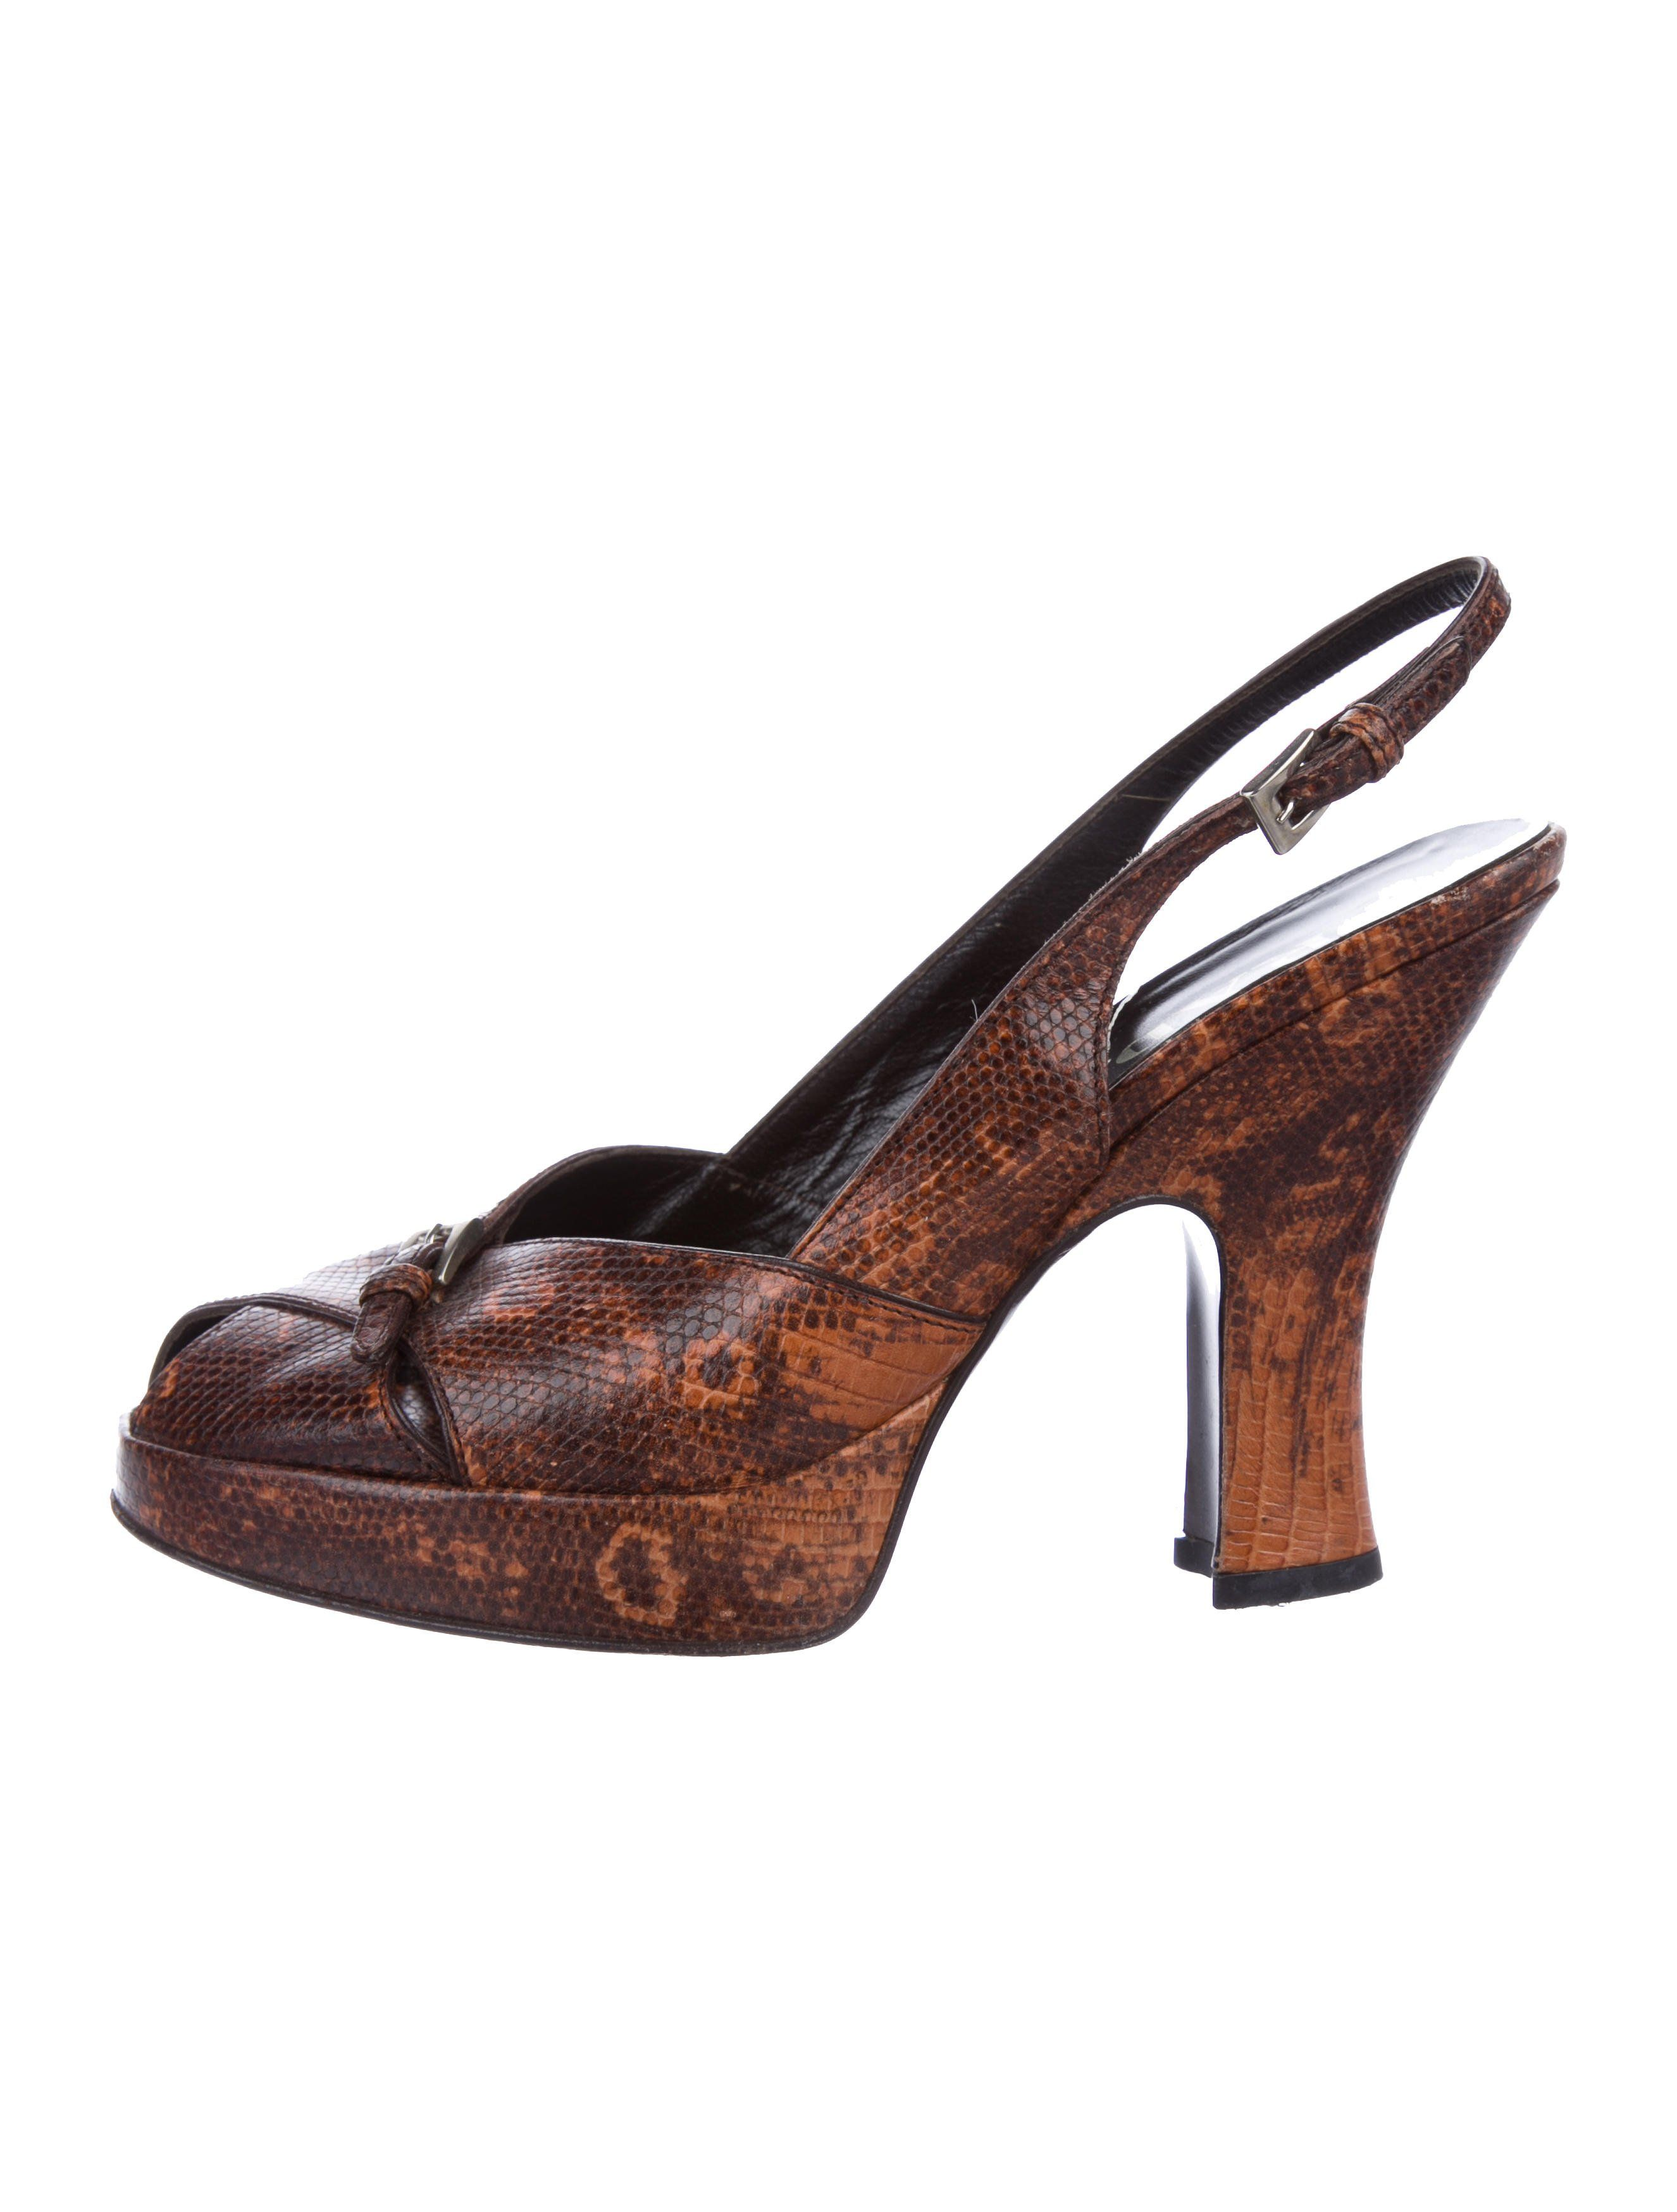 75637904c1d8 Prada Embossed Slingback Pumps - Shoes - PRA187343